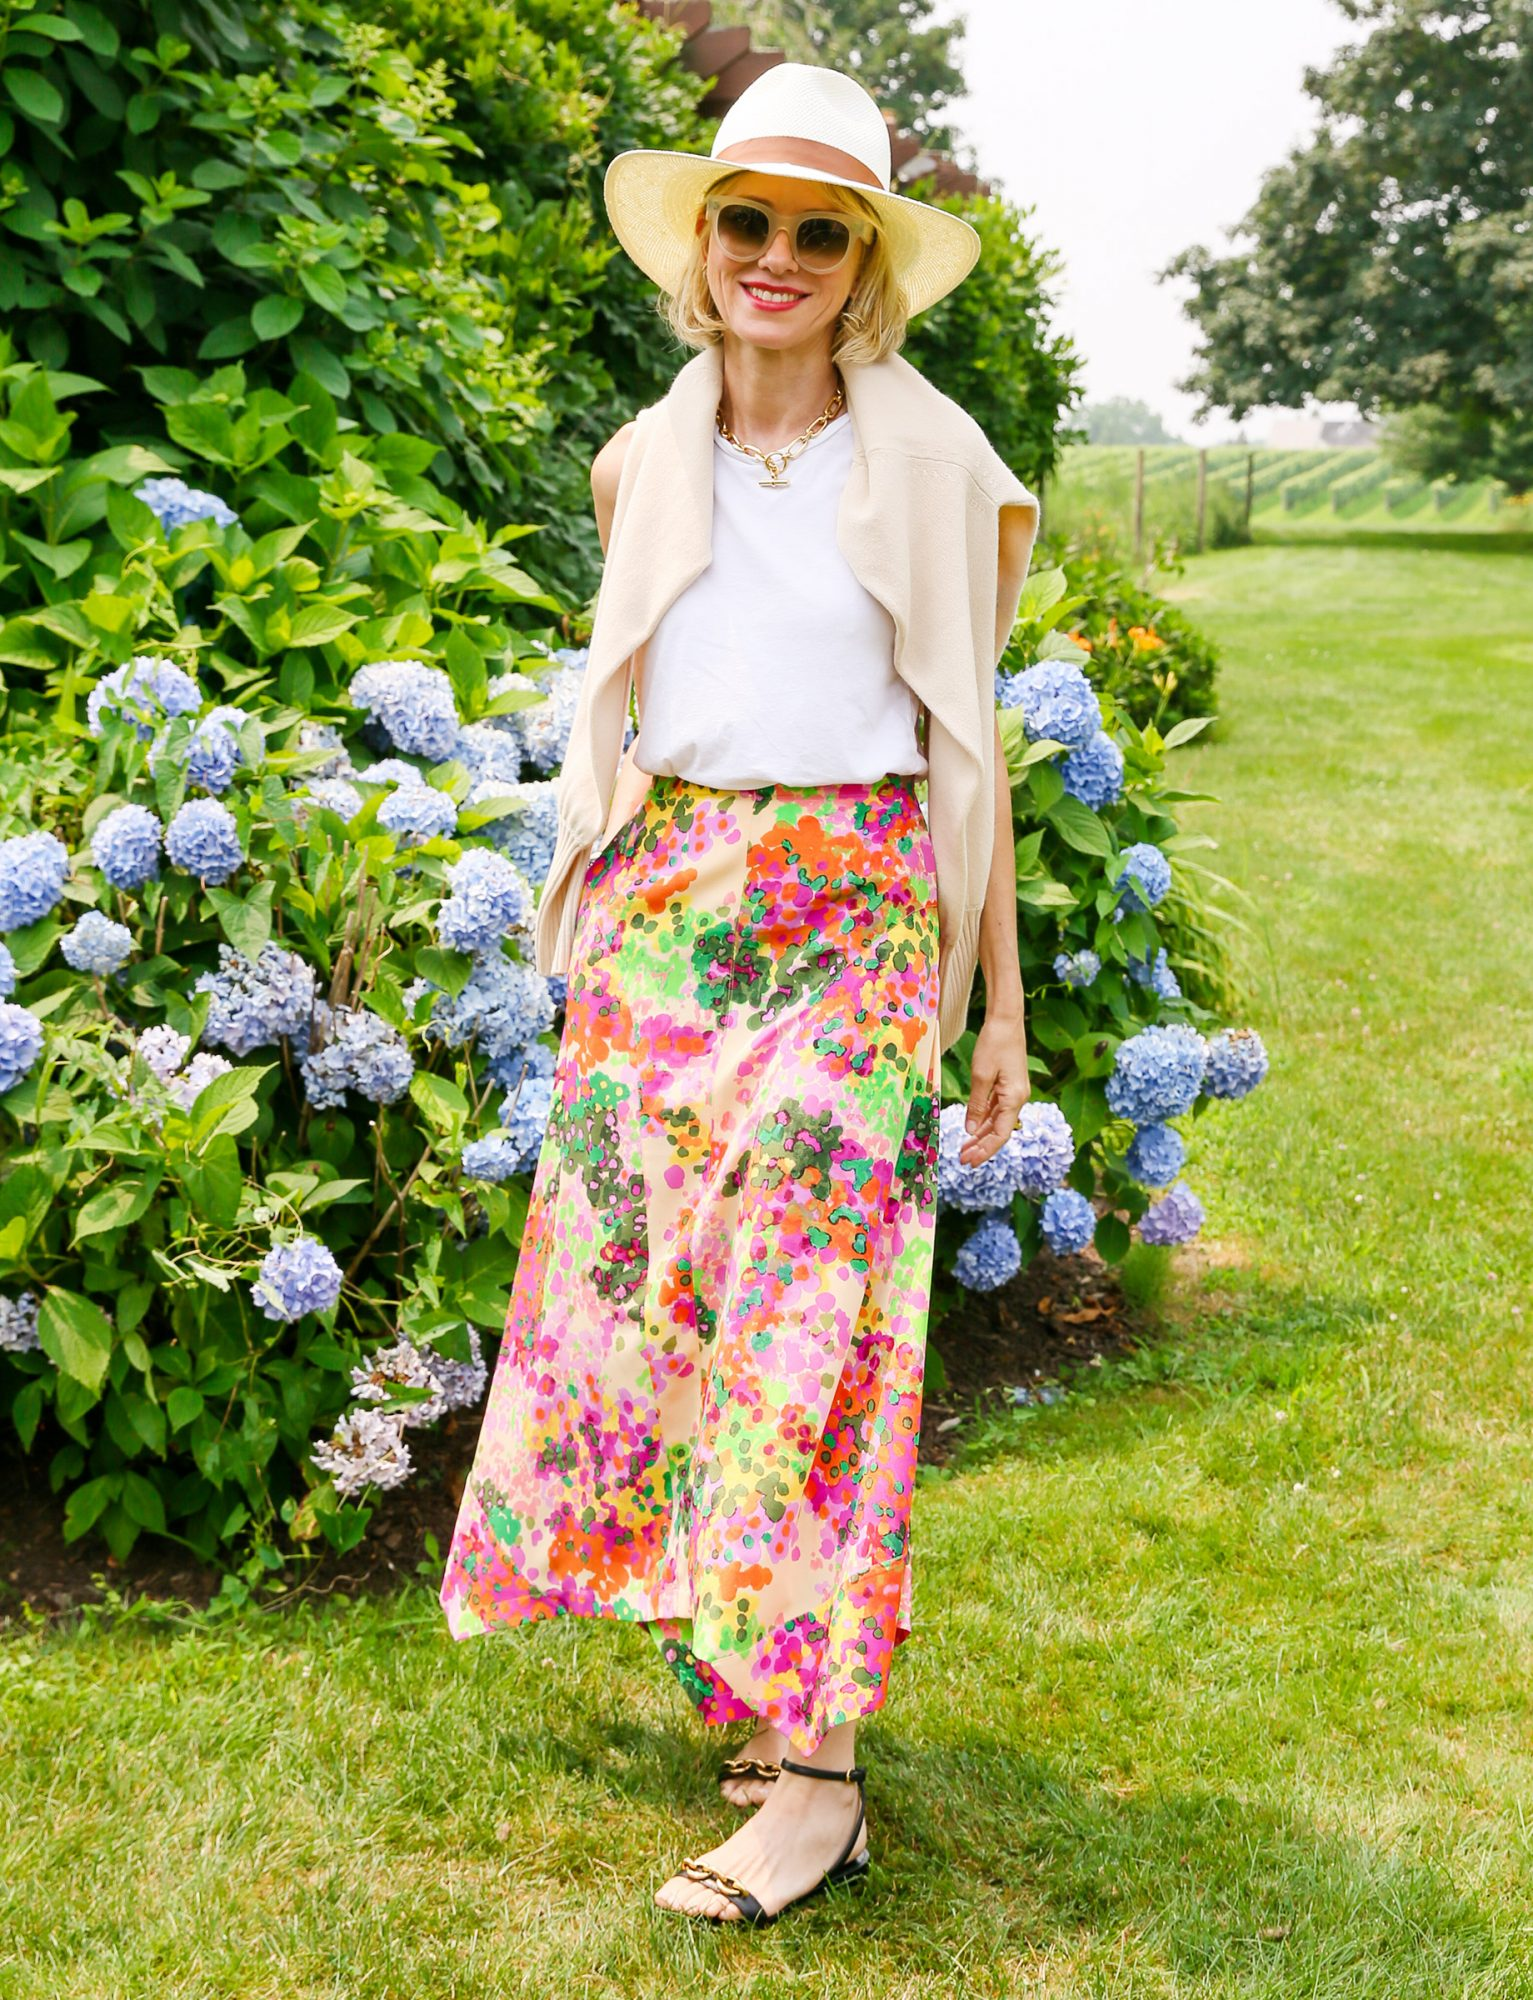 Naomi Watts attends the Mytheresa x Naomi Watts x Gucci Westman at The Wolffer Private Residence, Sagaponack, New York on July 20, 2021